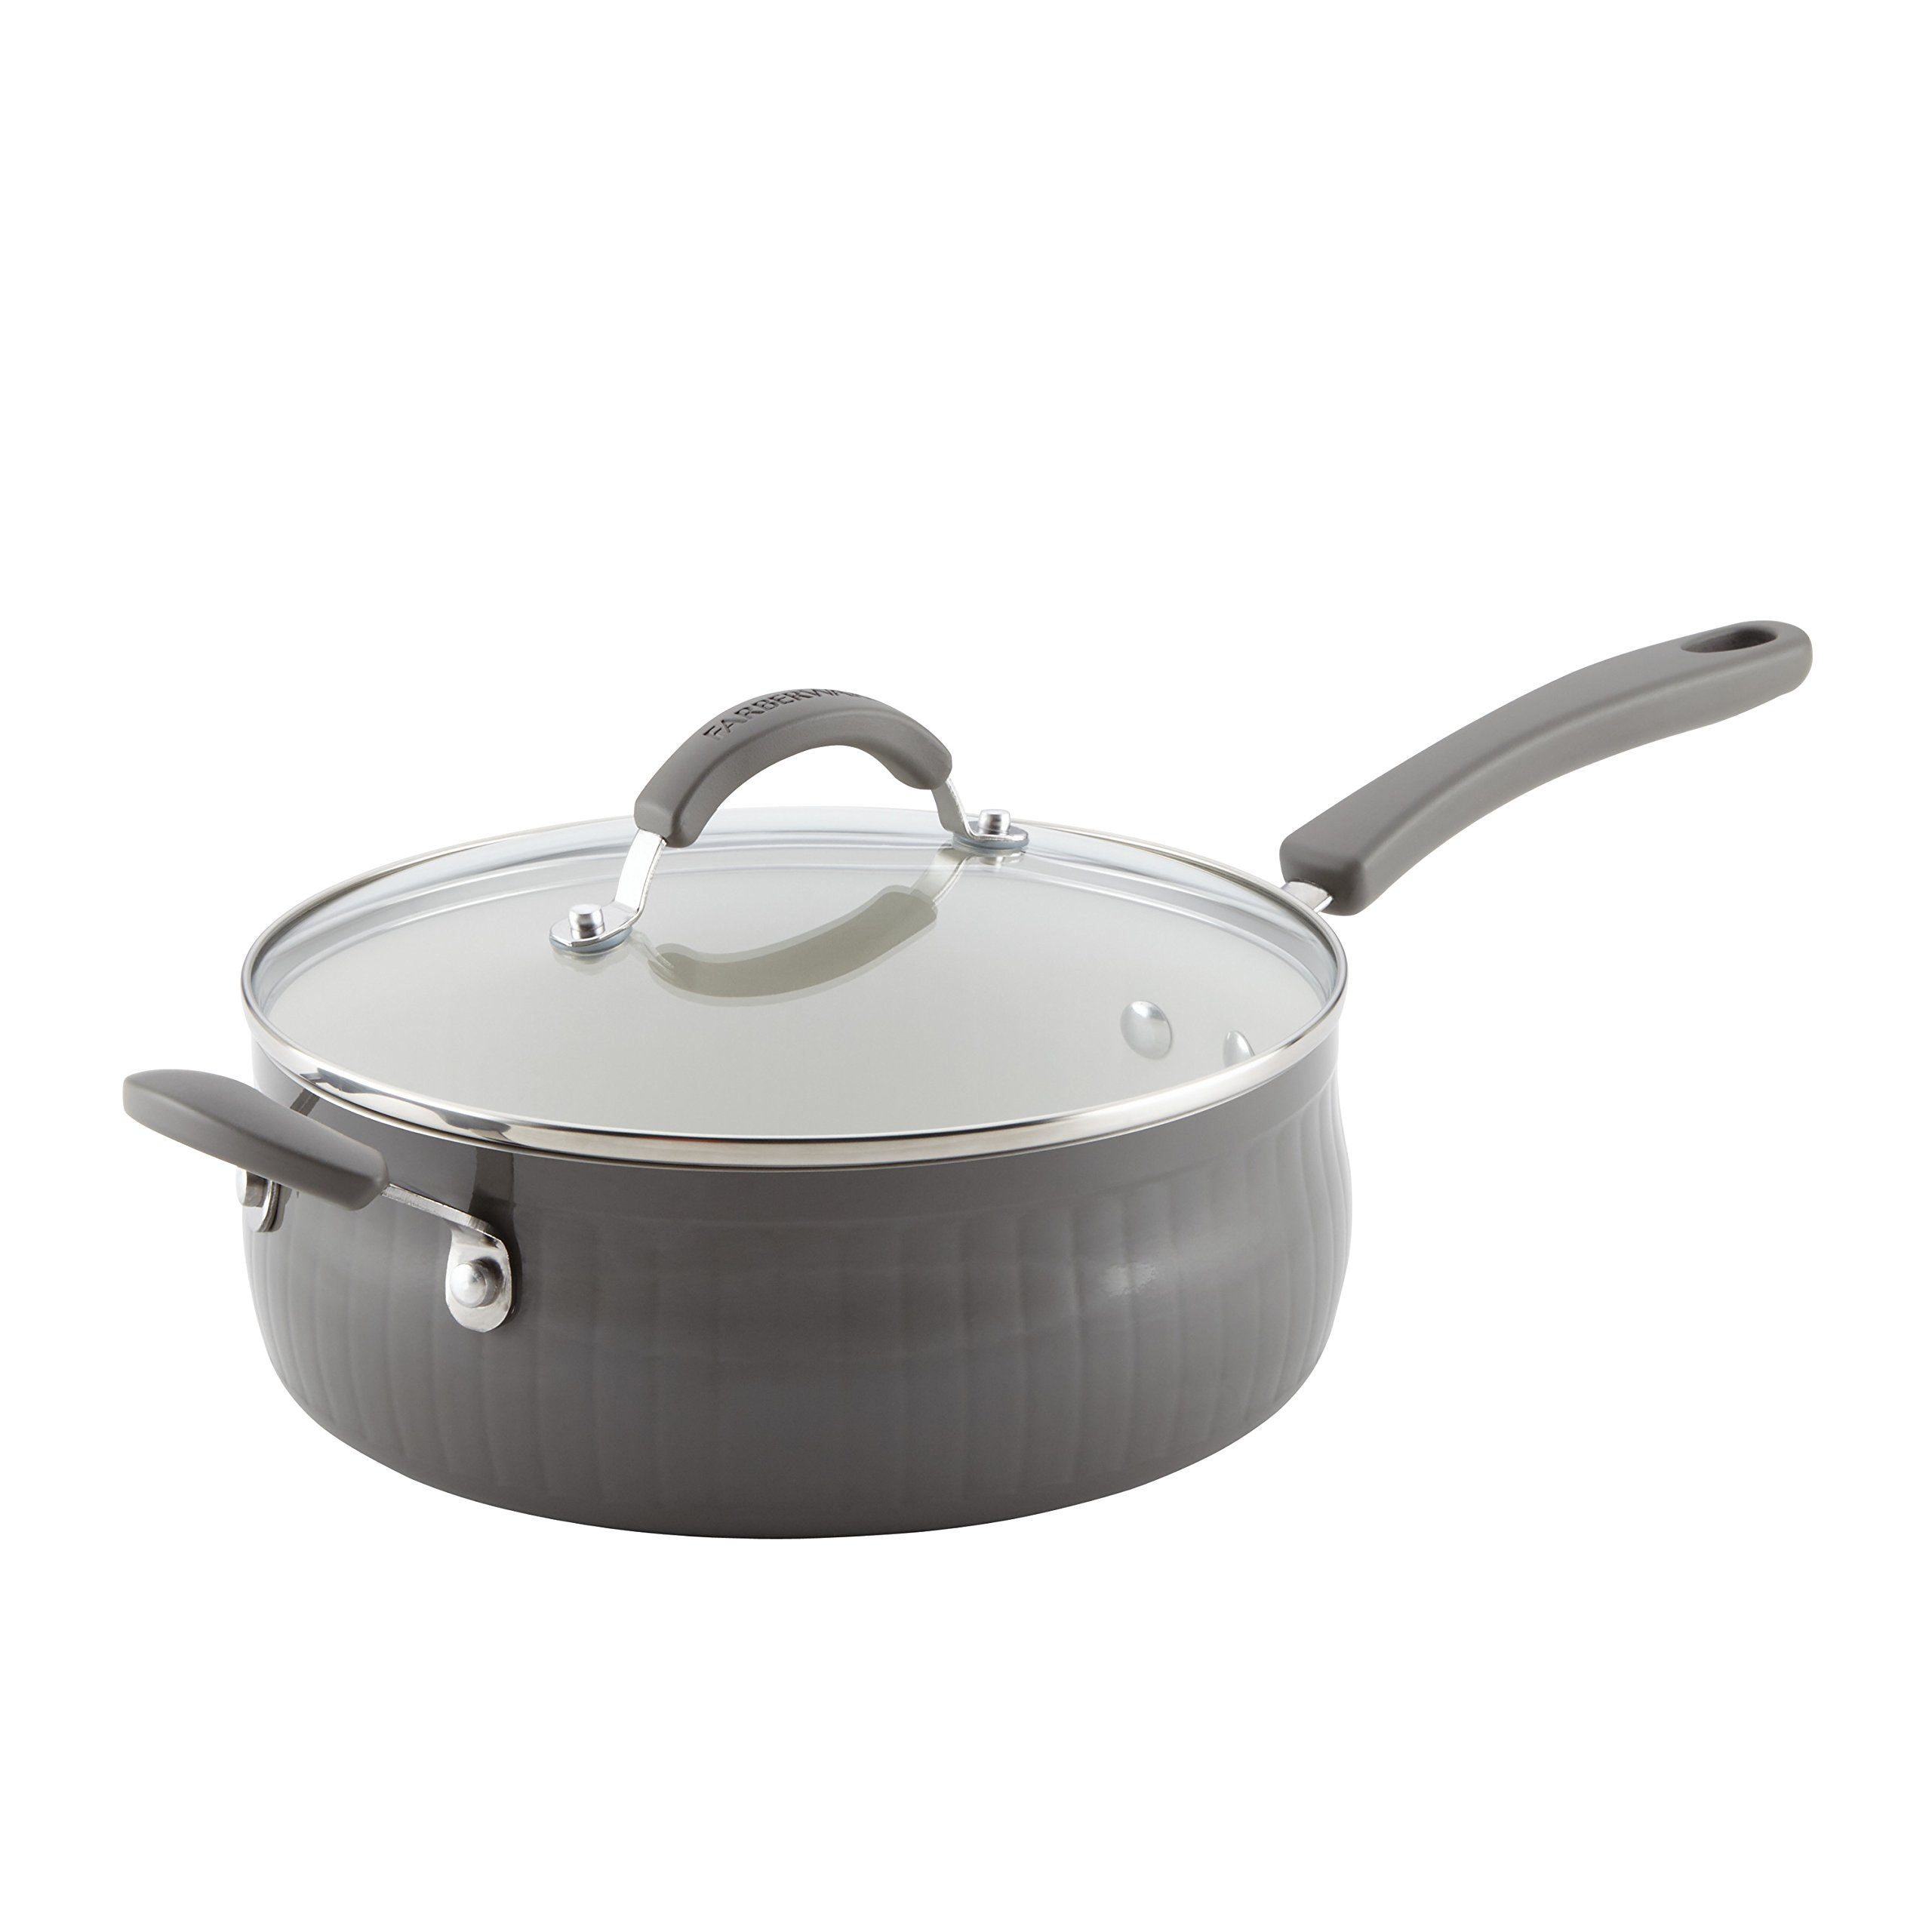 Farberware 16432 New Traditions Aluminum Nonstick Covered Saute with Helper Handle, 4 quart, Gray